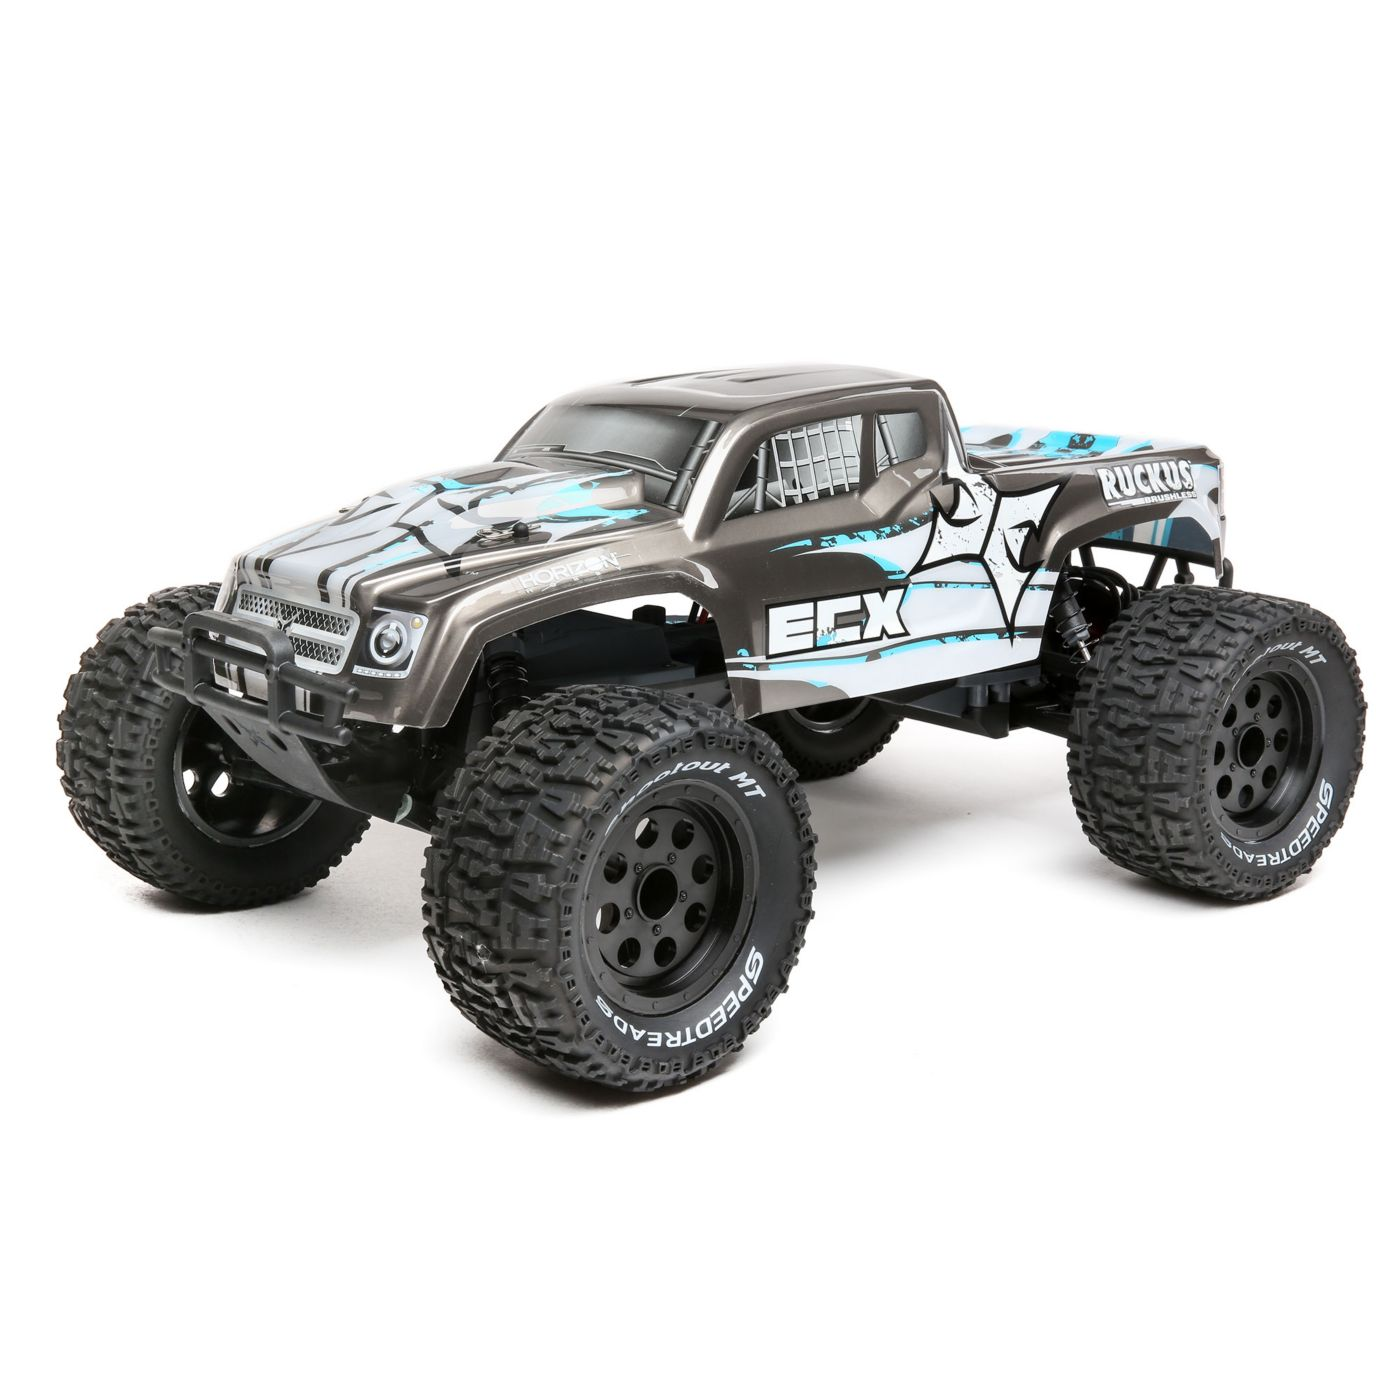 The ECX Ruckus 2WD Brushless, LiPo-powered 1/10-scale Monster Truck